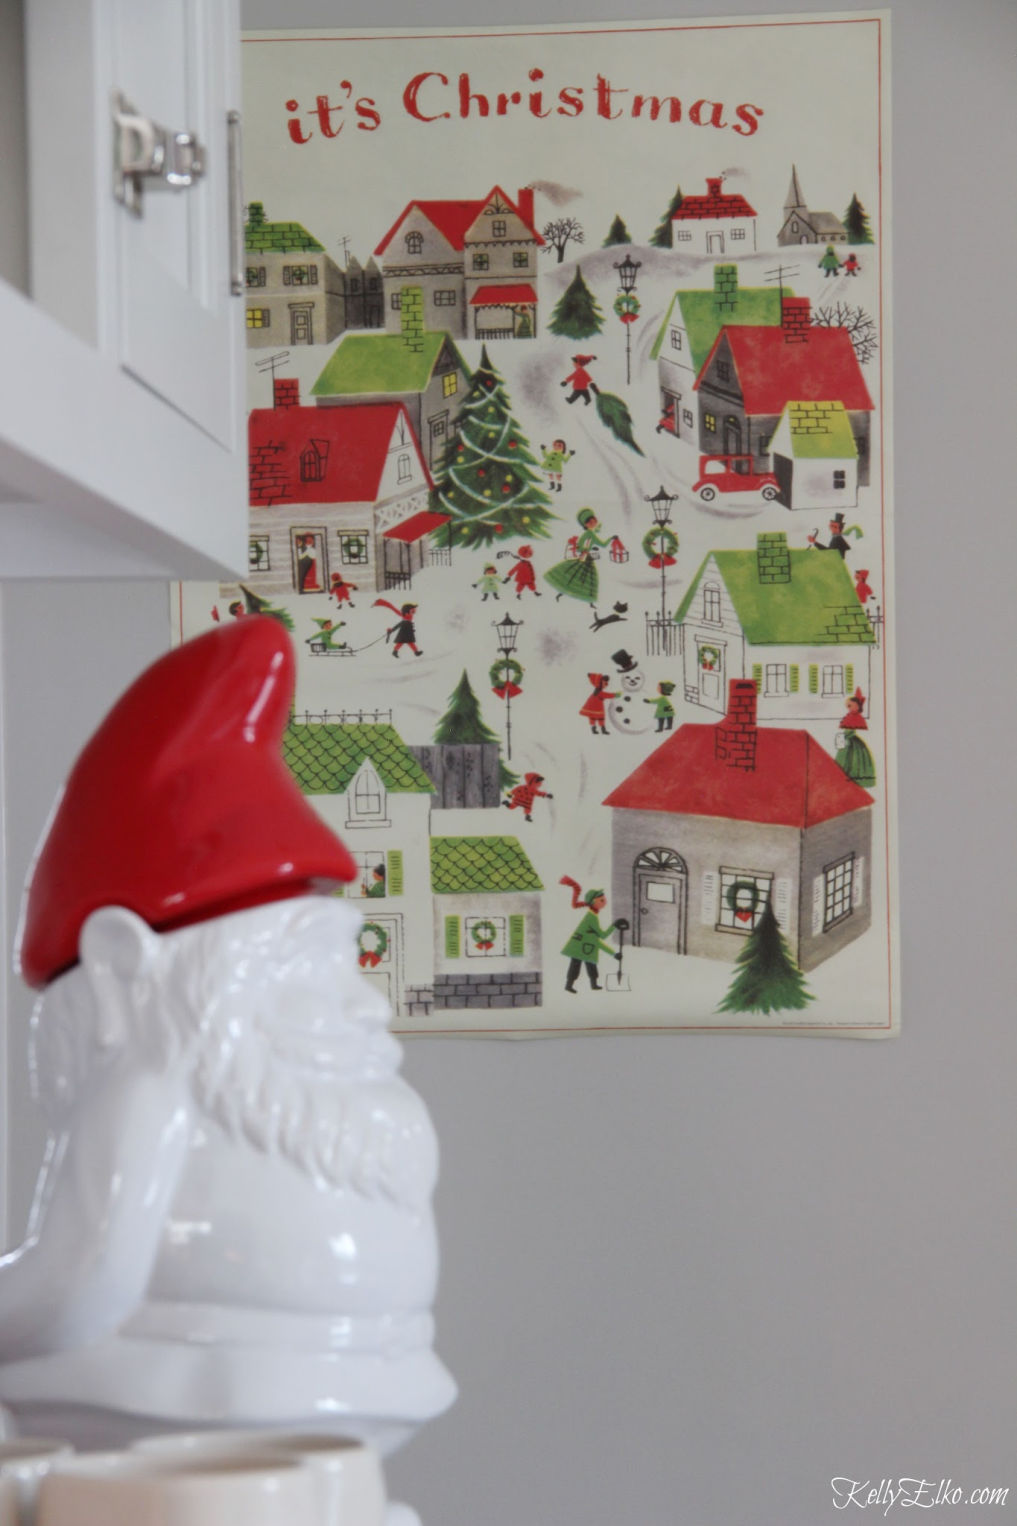 Colorful Christmas Home Tour - love the winter village art in the kitchen kellyelko.com #christmas #christmasdecor #christmasdecorating #christmashome #christmastour #diychristmas #christmasideas #christmasmantel #christmastree #christmasornaments #vintagechristmas #farmhousechristmas #colorfulchristmas #creativechristmas #kellyelko #gnome #christmasvillage #christmasart